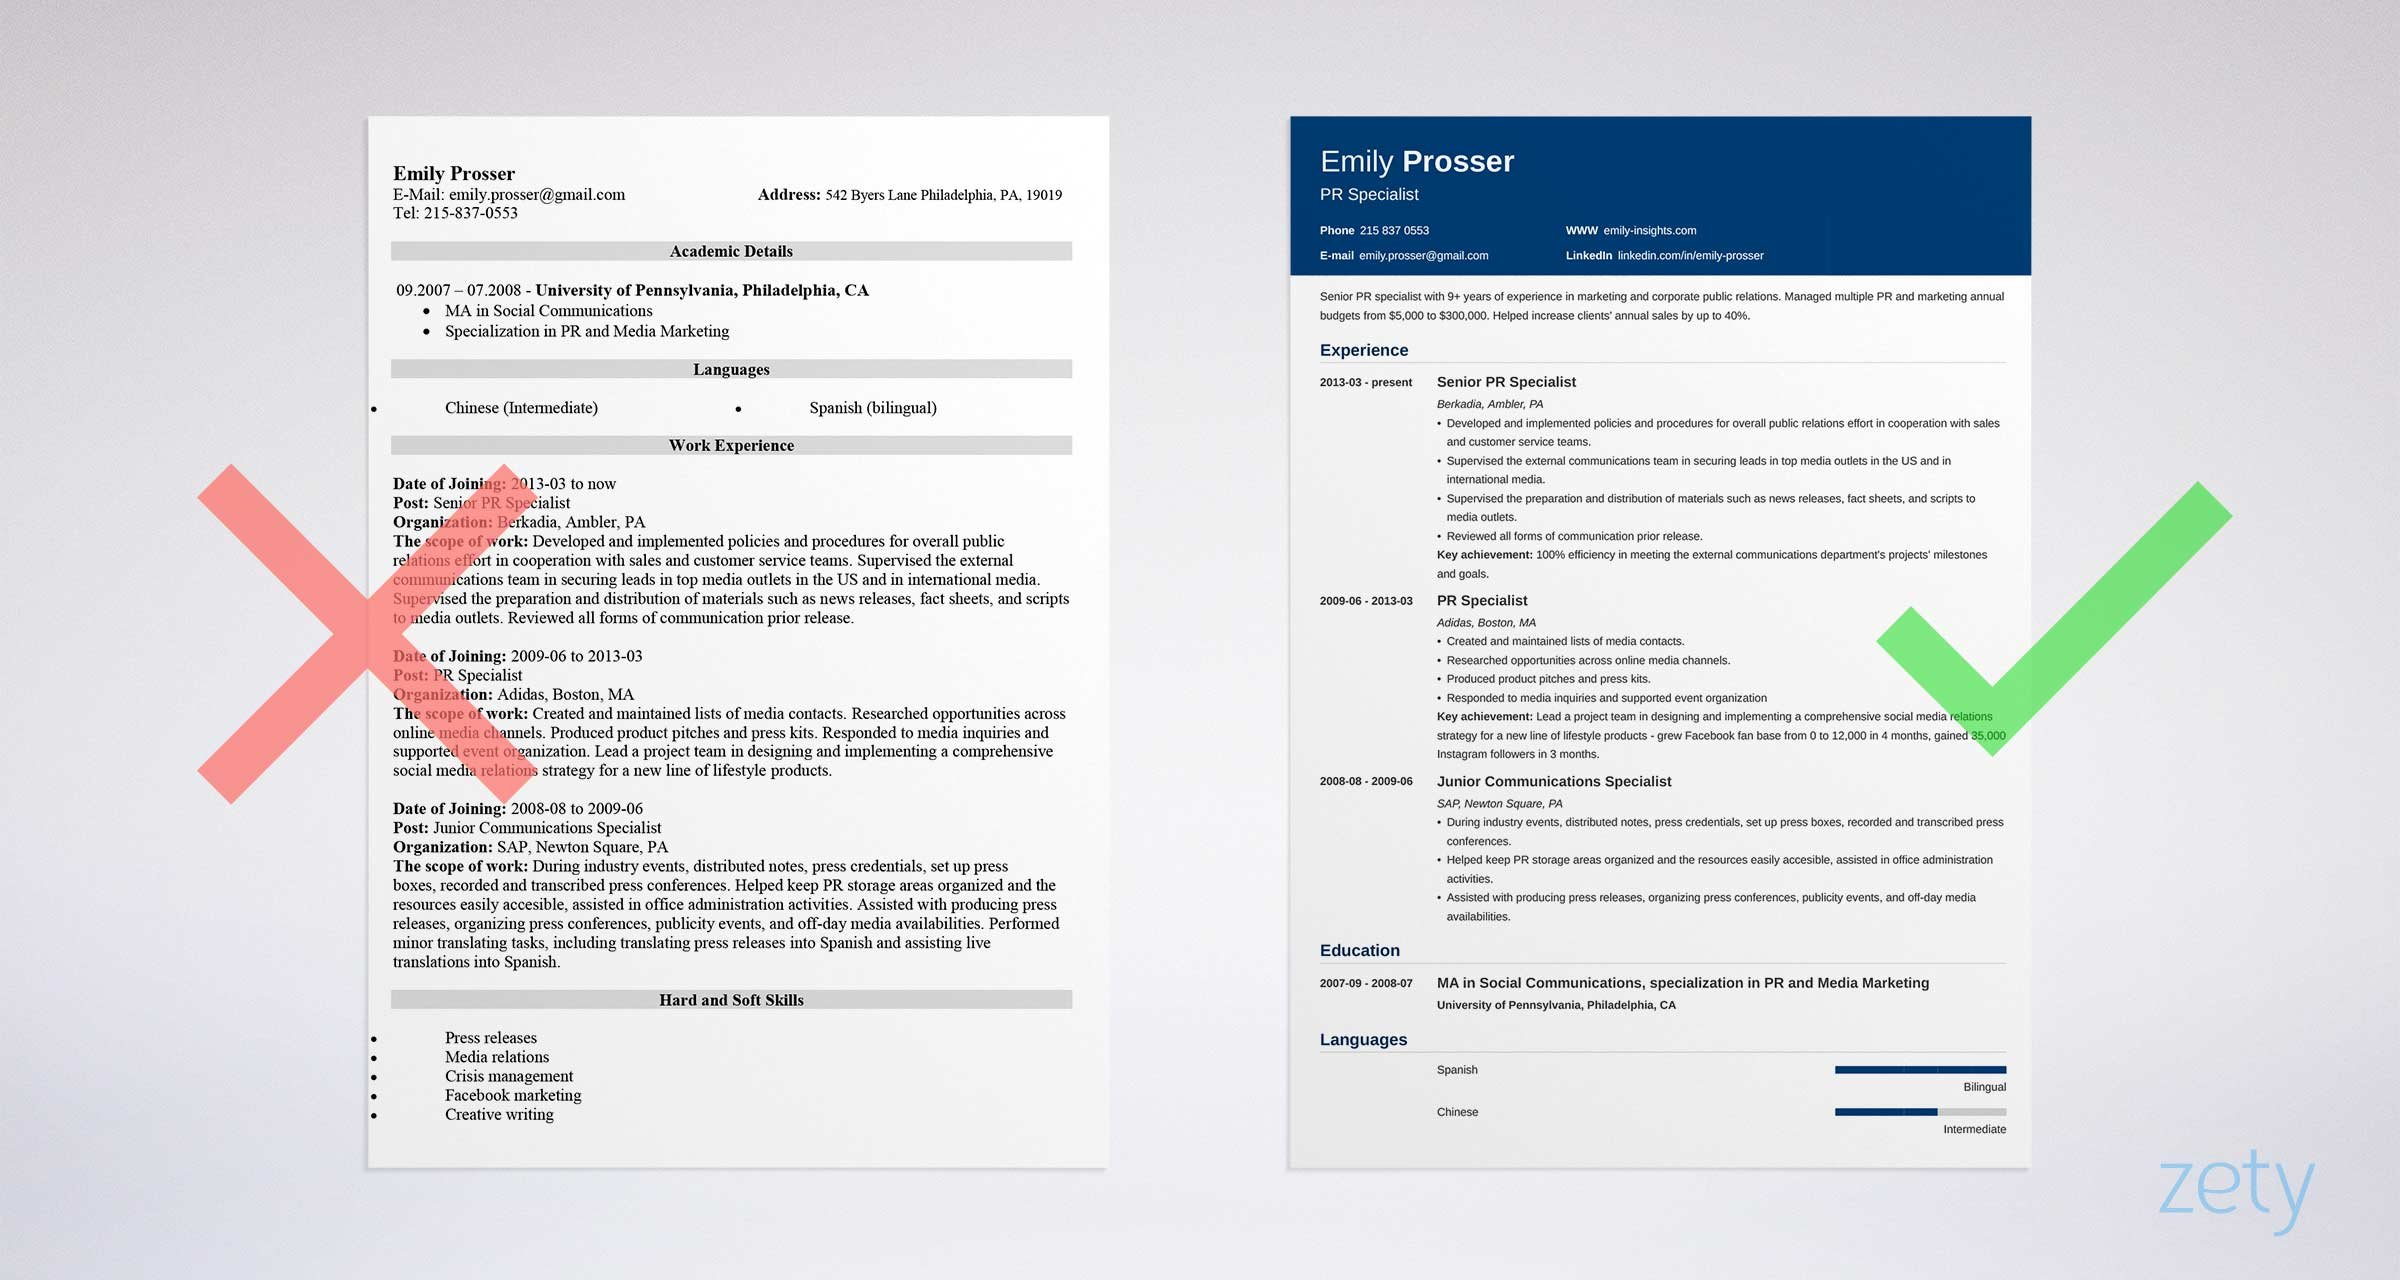 free google docs resume templates drive alternatives create with airline review Resume Create Resume With Google Docs